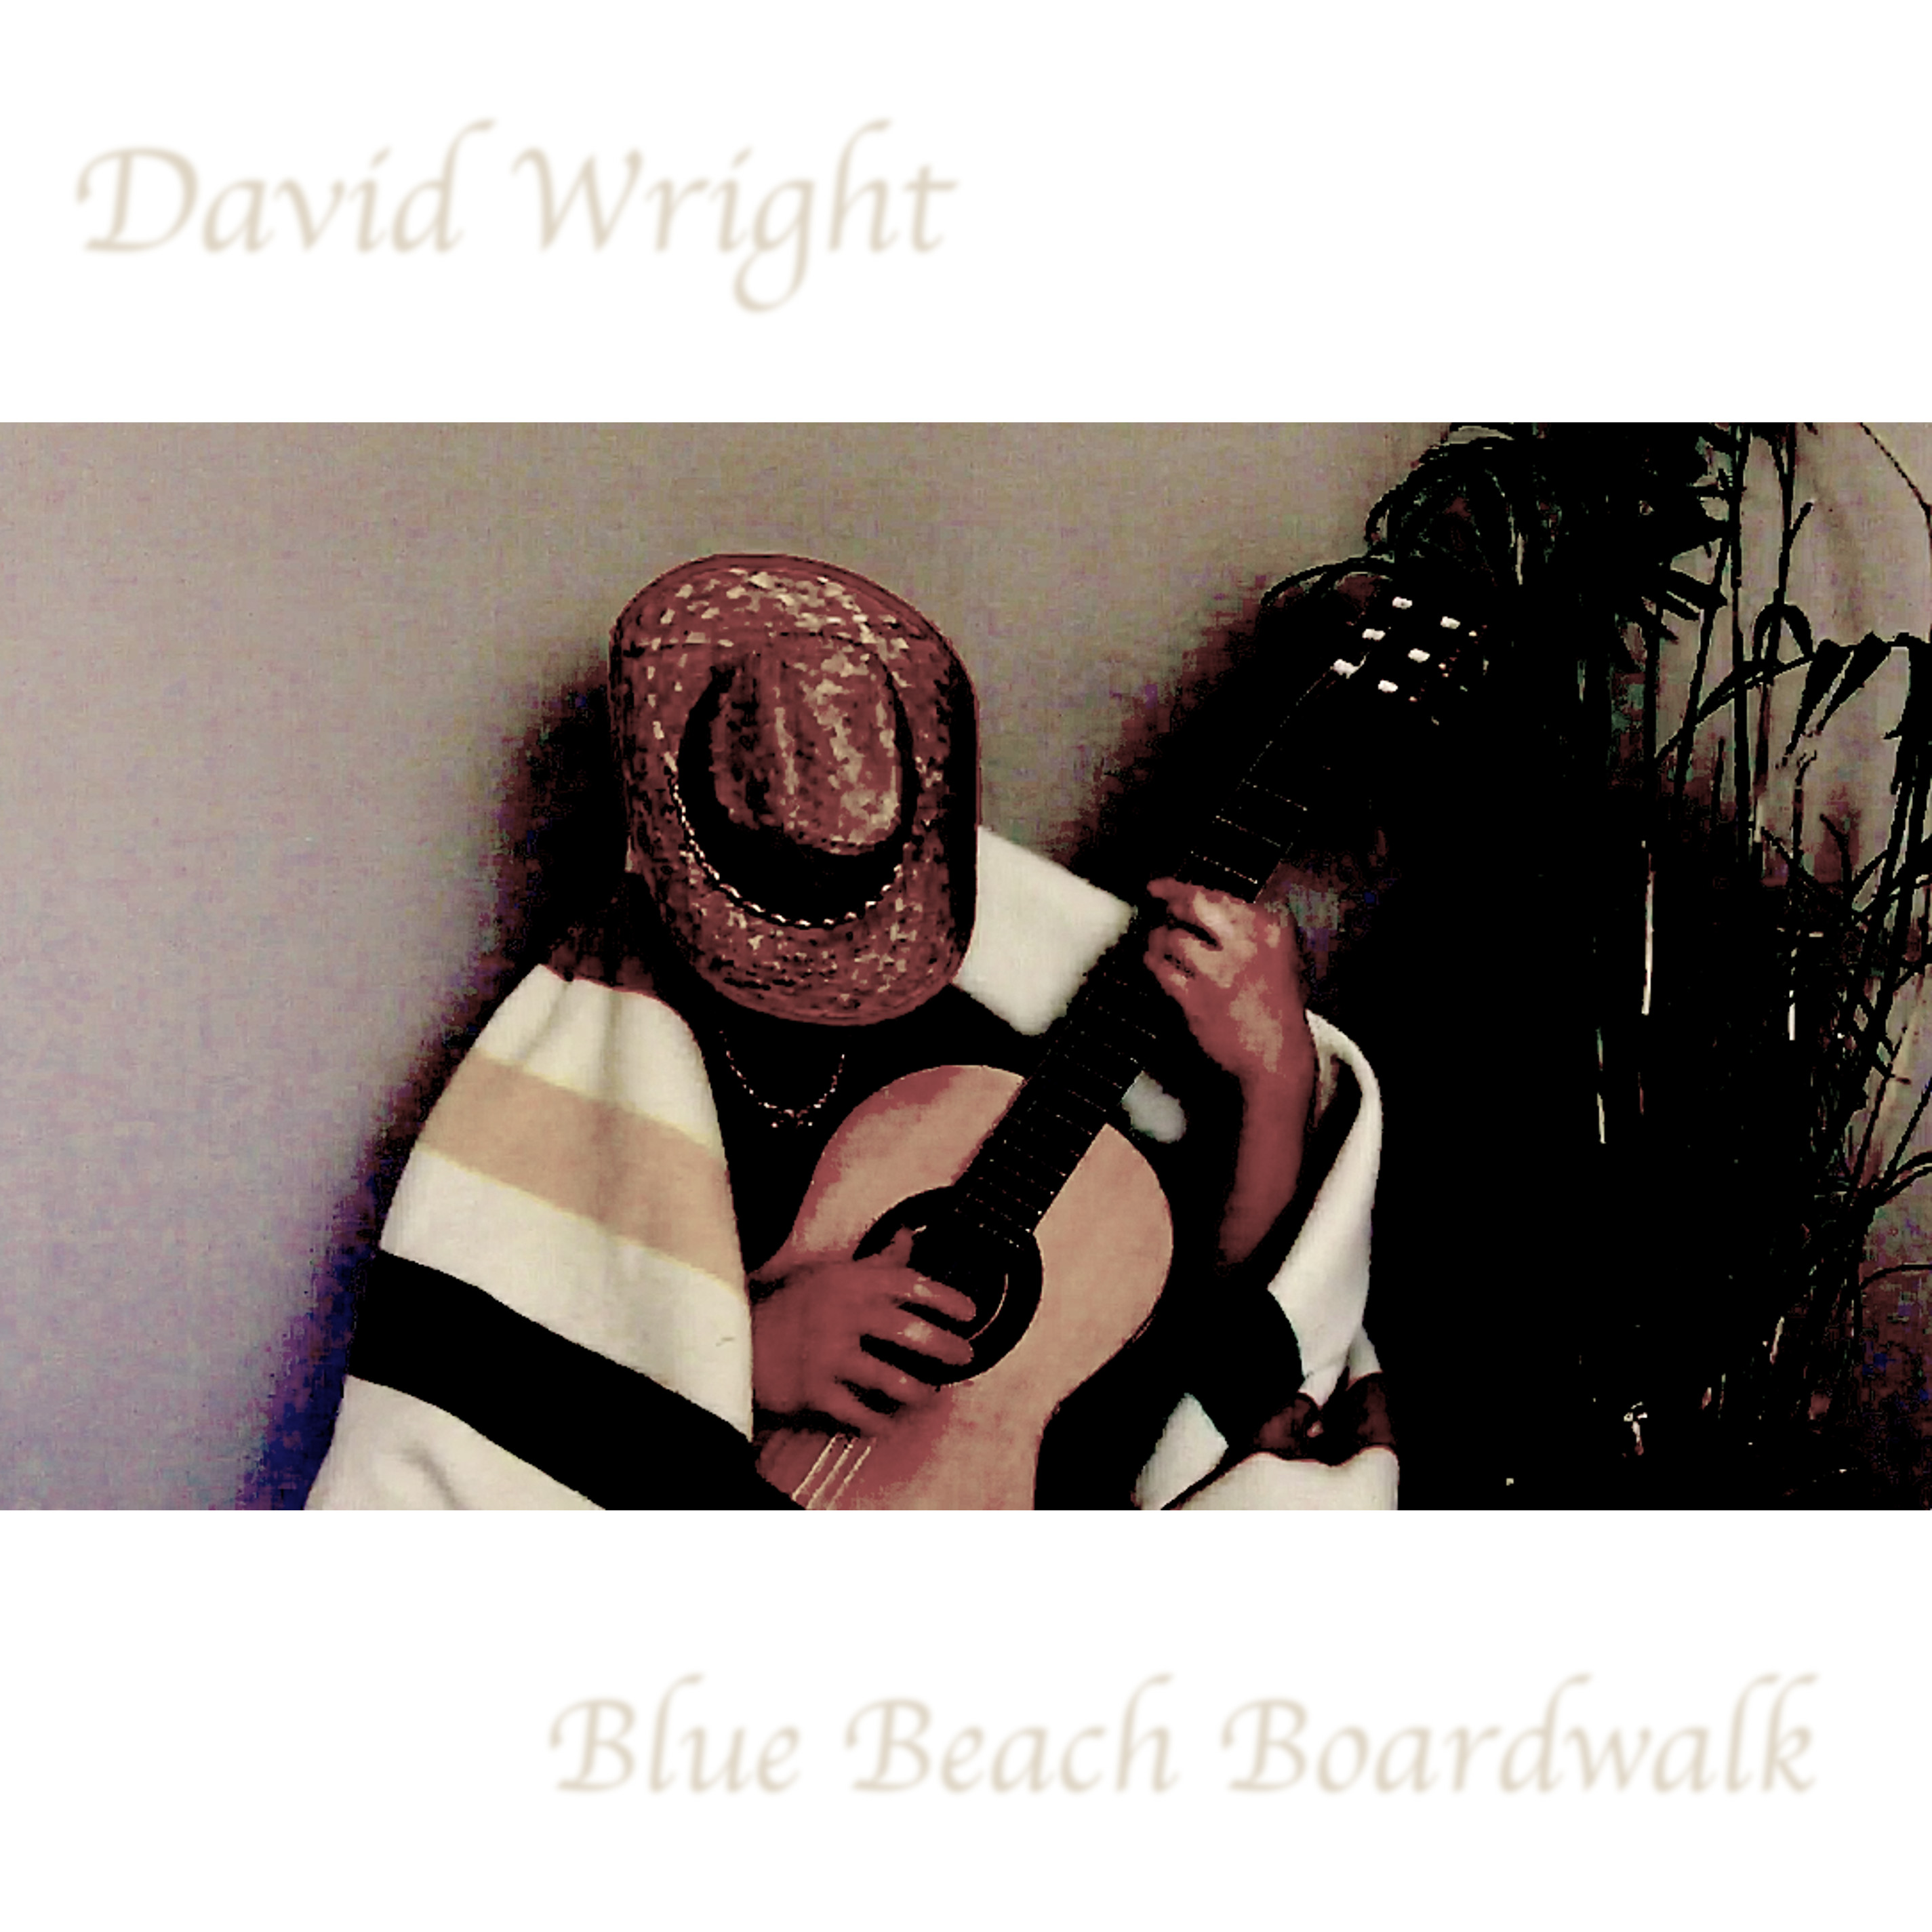 Dave V Wright : Blue Beach Boardwalk